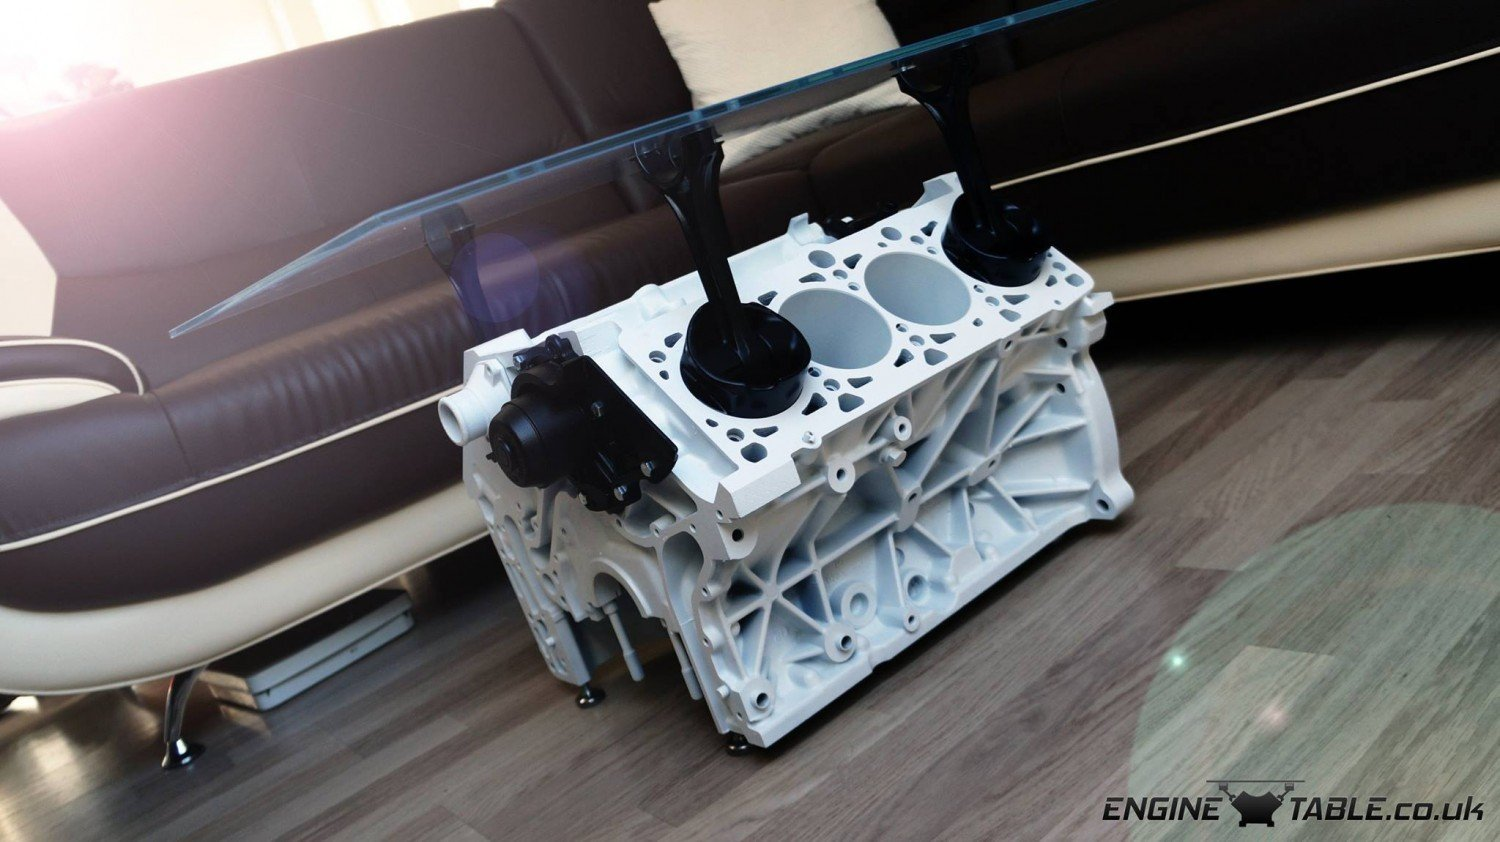 stunning audi v8 engine coffee table by engine table uk. Black Bedroom Furniture Sets. Home Design Ideas